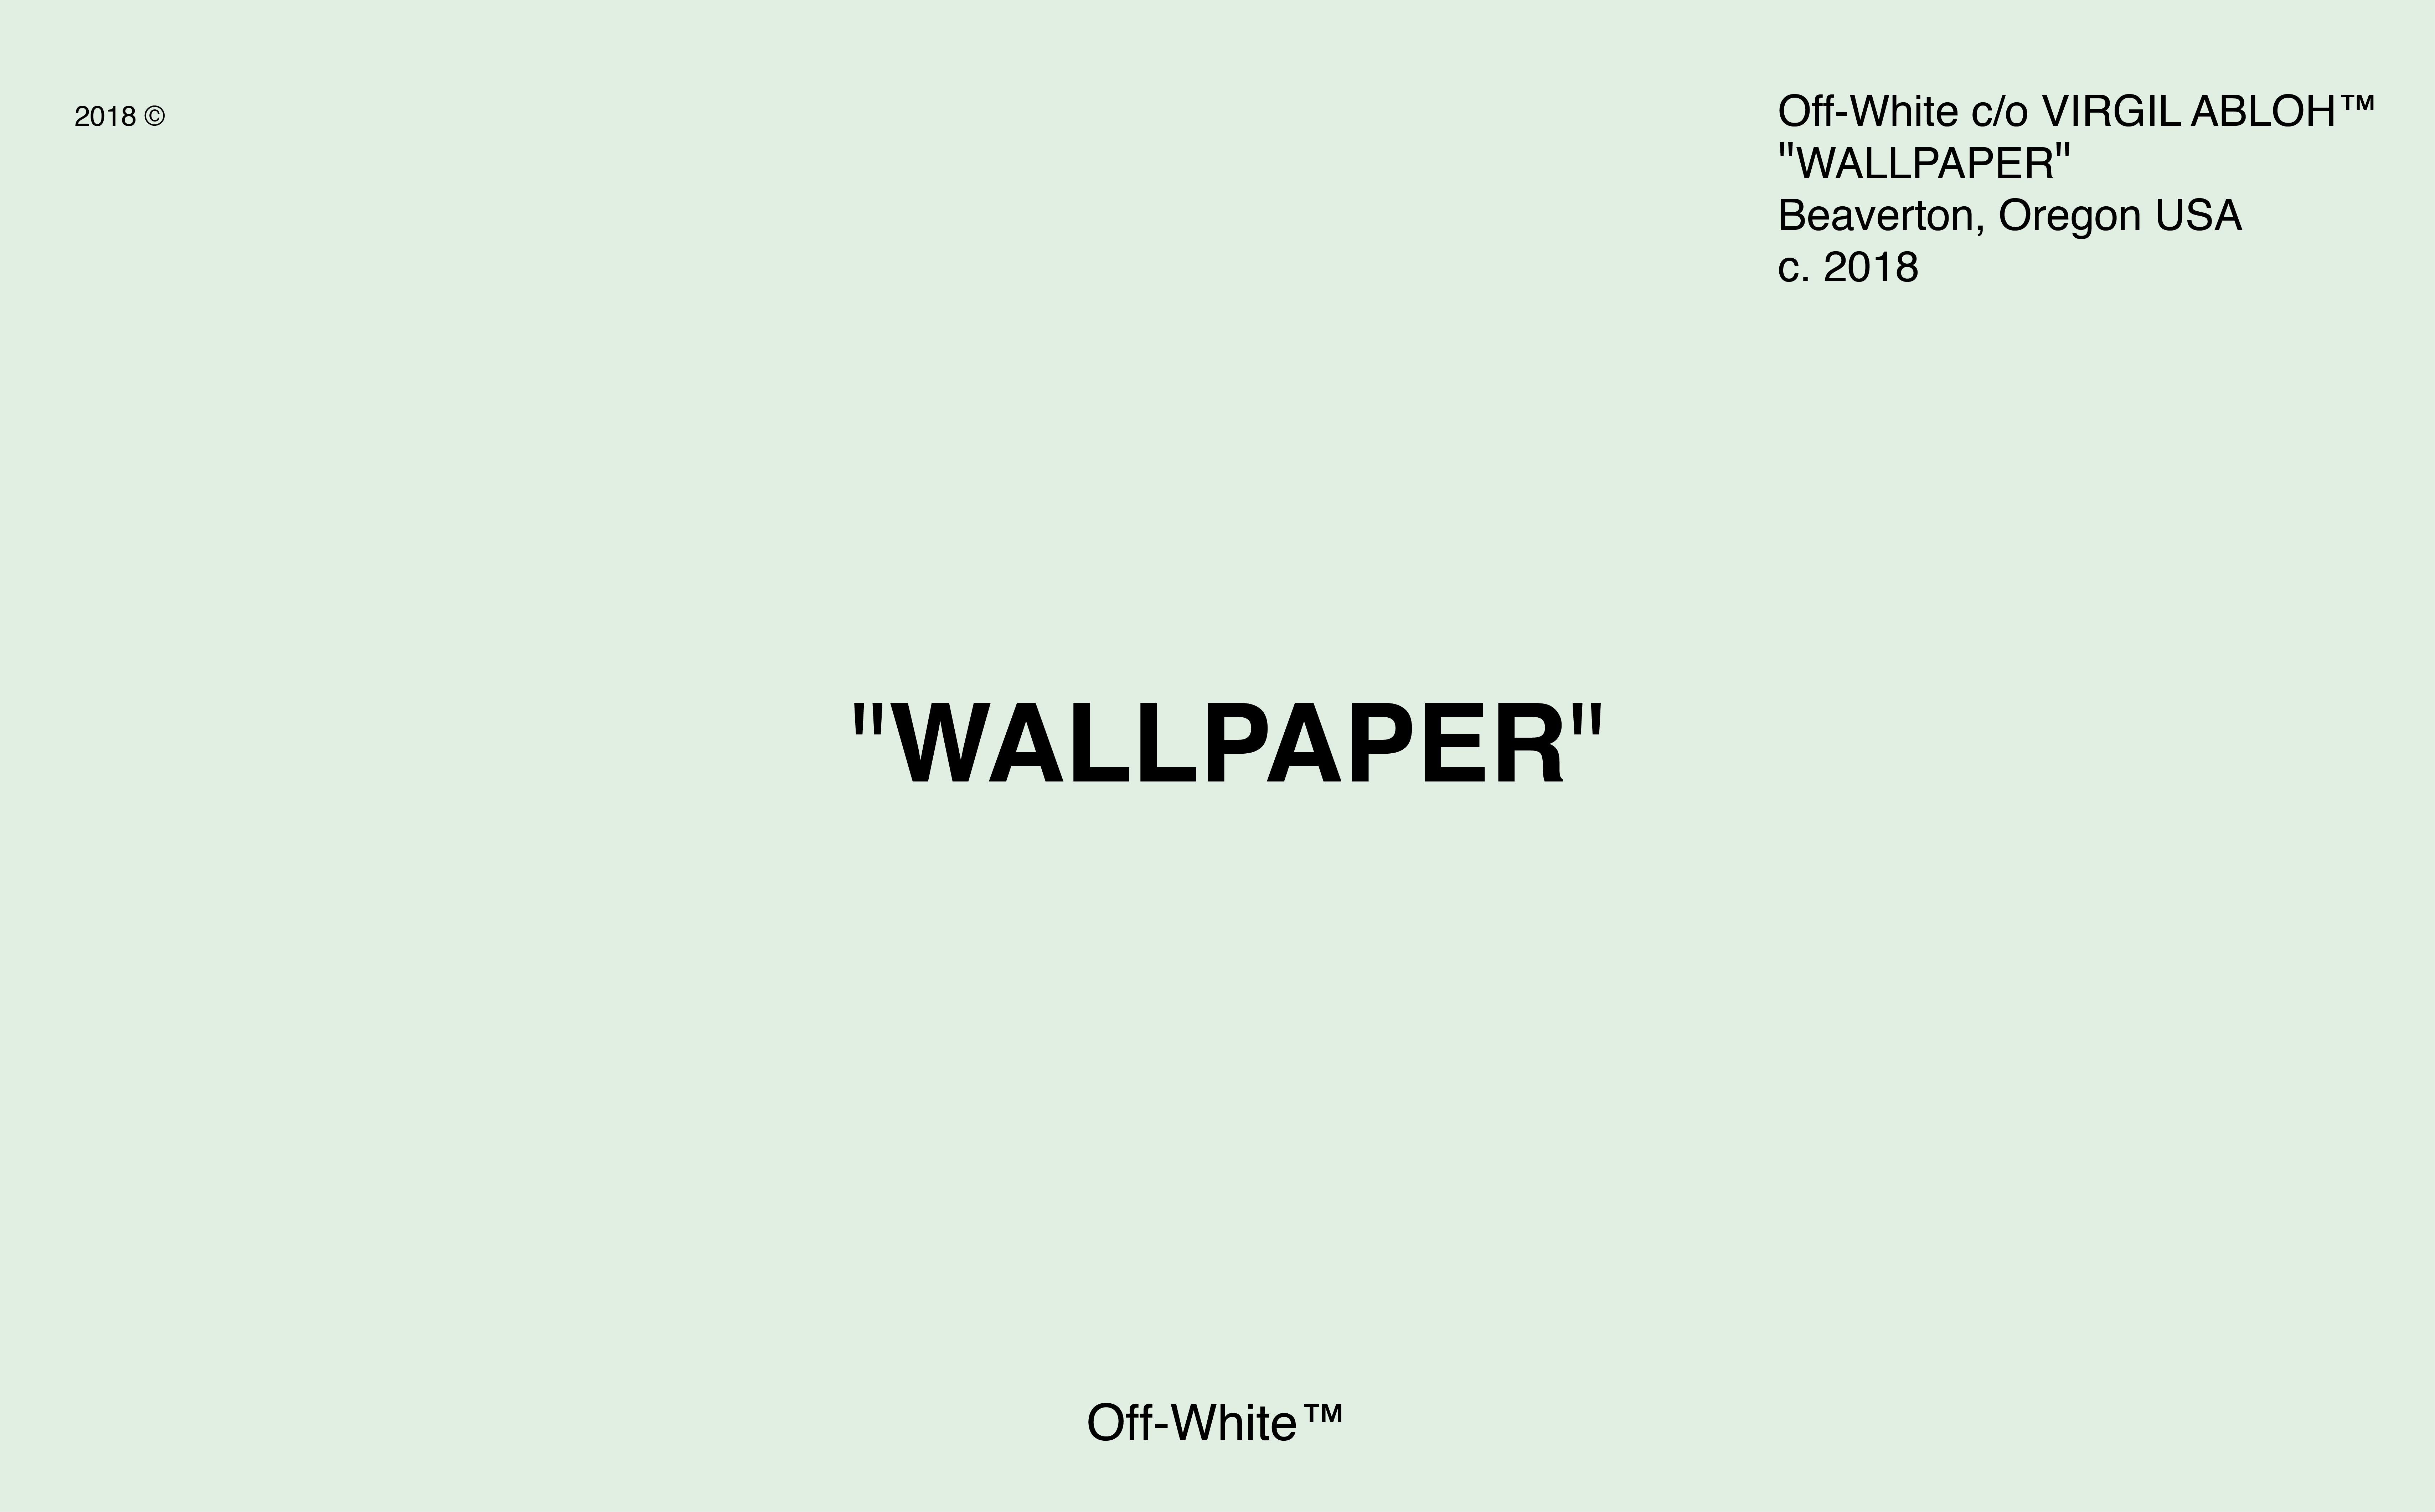 High Resolution Off White Wallpaper Made For Macbooks Let It Fill The Screen Macbook Wallpaper Desktop Wallpaper Macbook Laptop Wallpaper Desktop Wallpapers